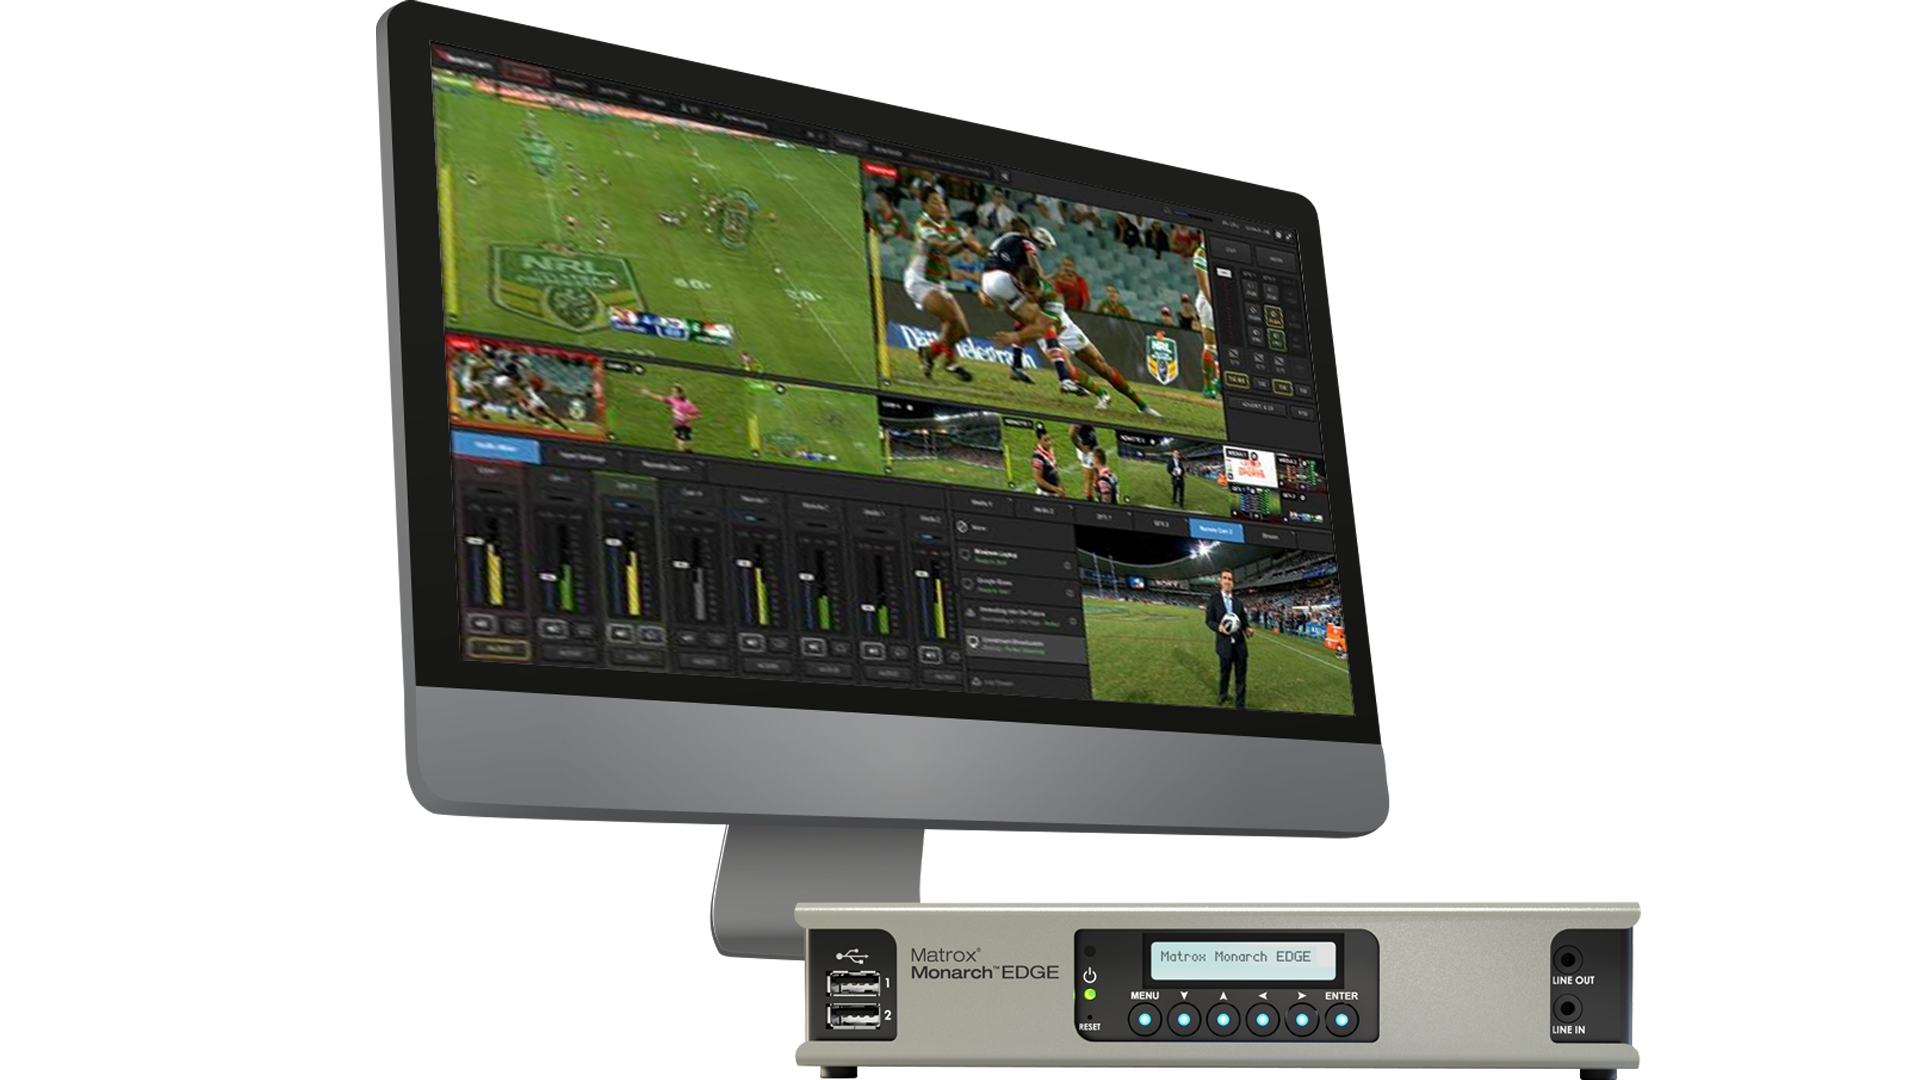 Vimeo Studio 6 Live Production Switcher Software and Matrox Monarch EDGE encoder for cloud-based, broadcast-quality multi-camera productions.